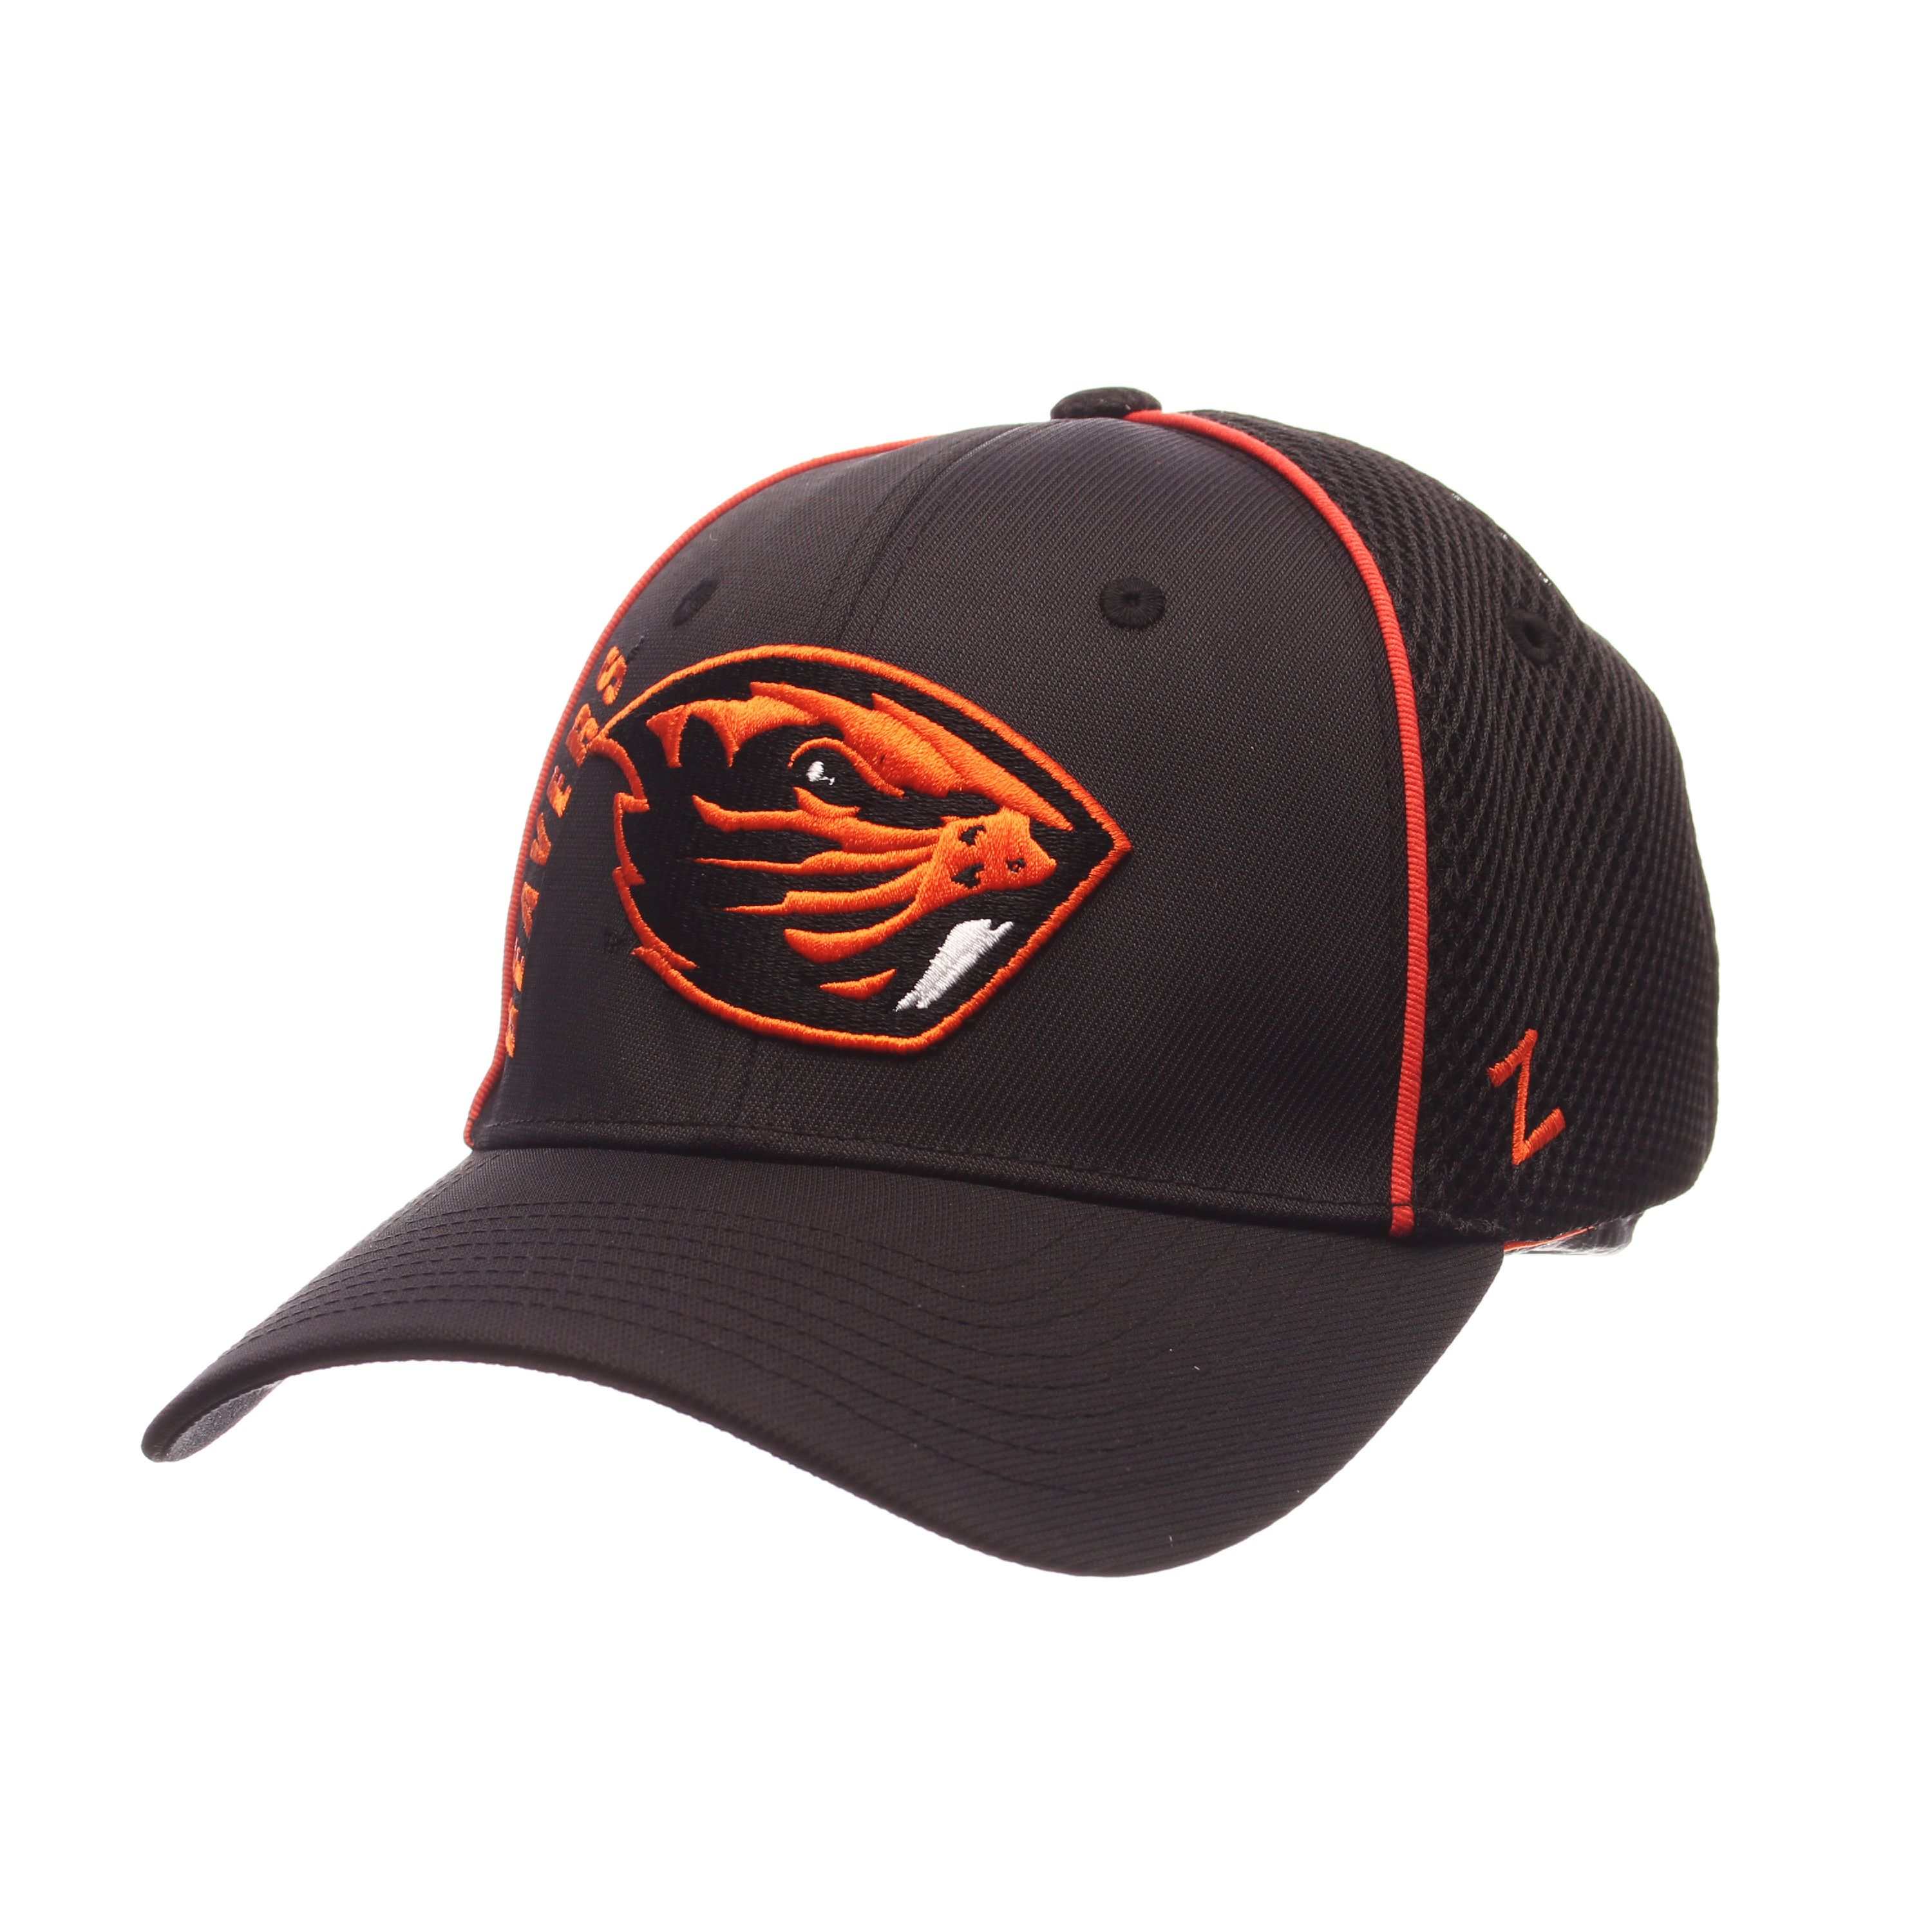 promo code 91cca 70e4c ... coupon for oregon state beavers punisher fitted hat black walmart e5e5c  884f4